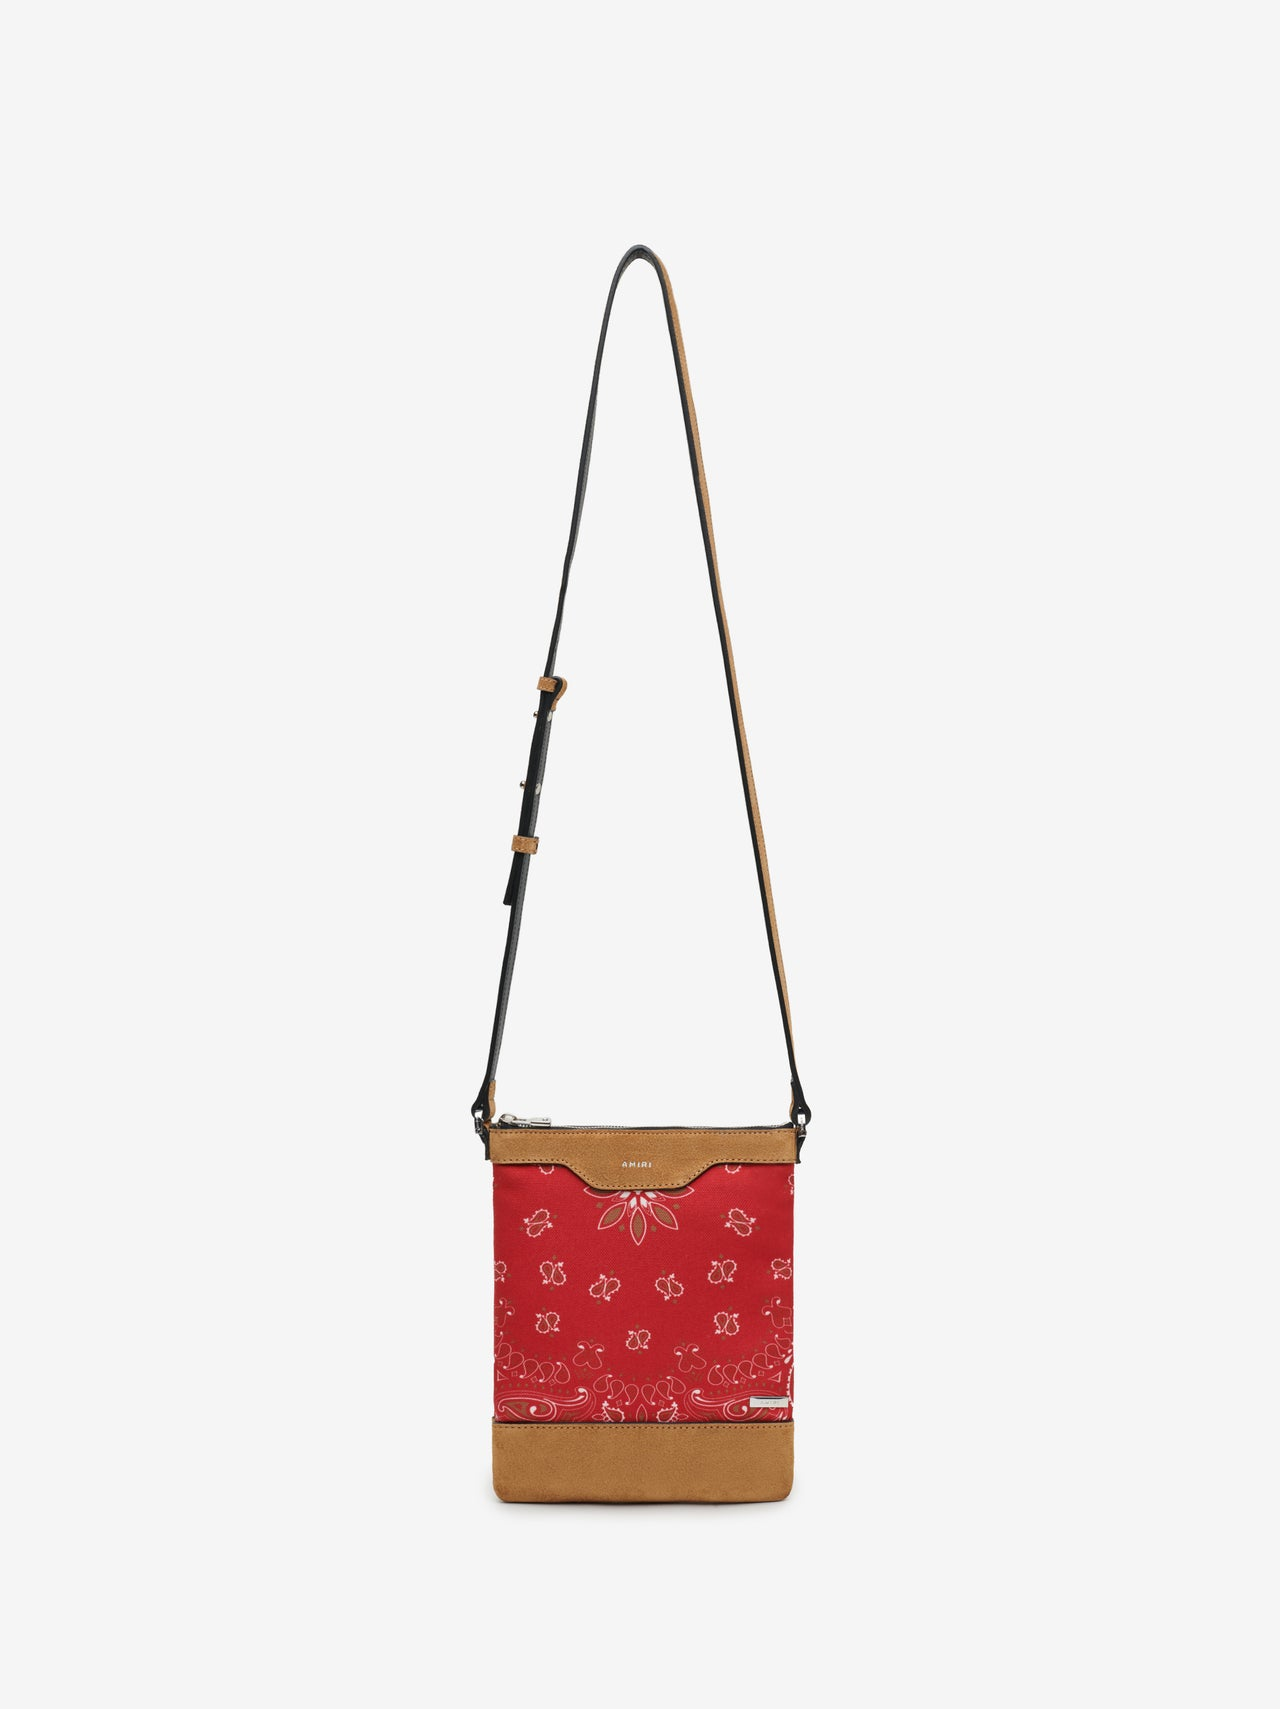 CANVAS / SUEDE BANDANA CROSSBODY - RED / TAN